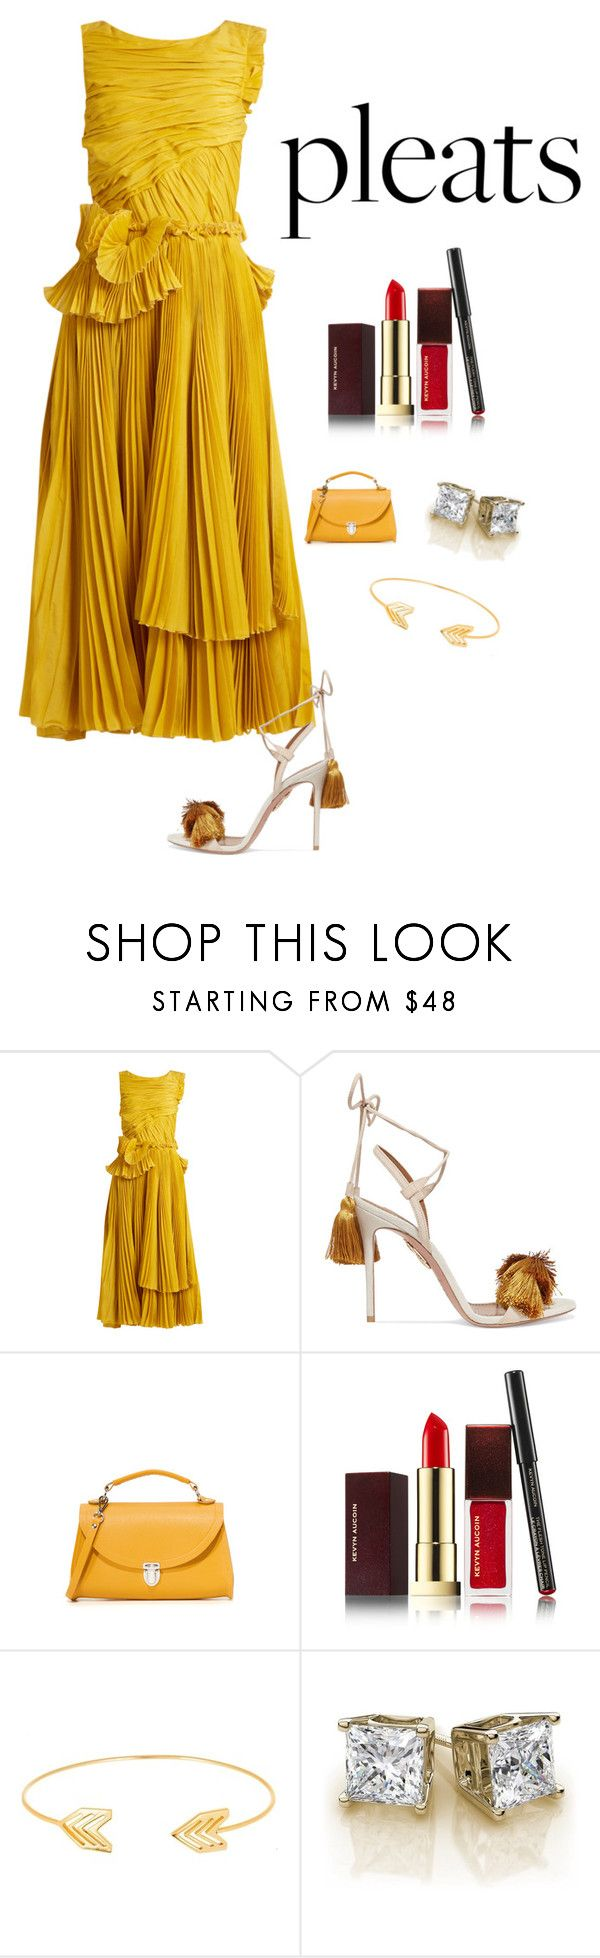 """Untitled #5617"" by kotnourka ❤ liked on Polyvore featuring Rochas, Aquazzura, The Cambridge Satchel Company, Kevyn Aucoin and Lord & Taylor"